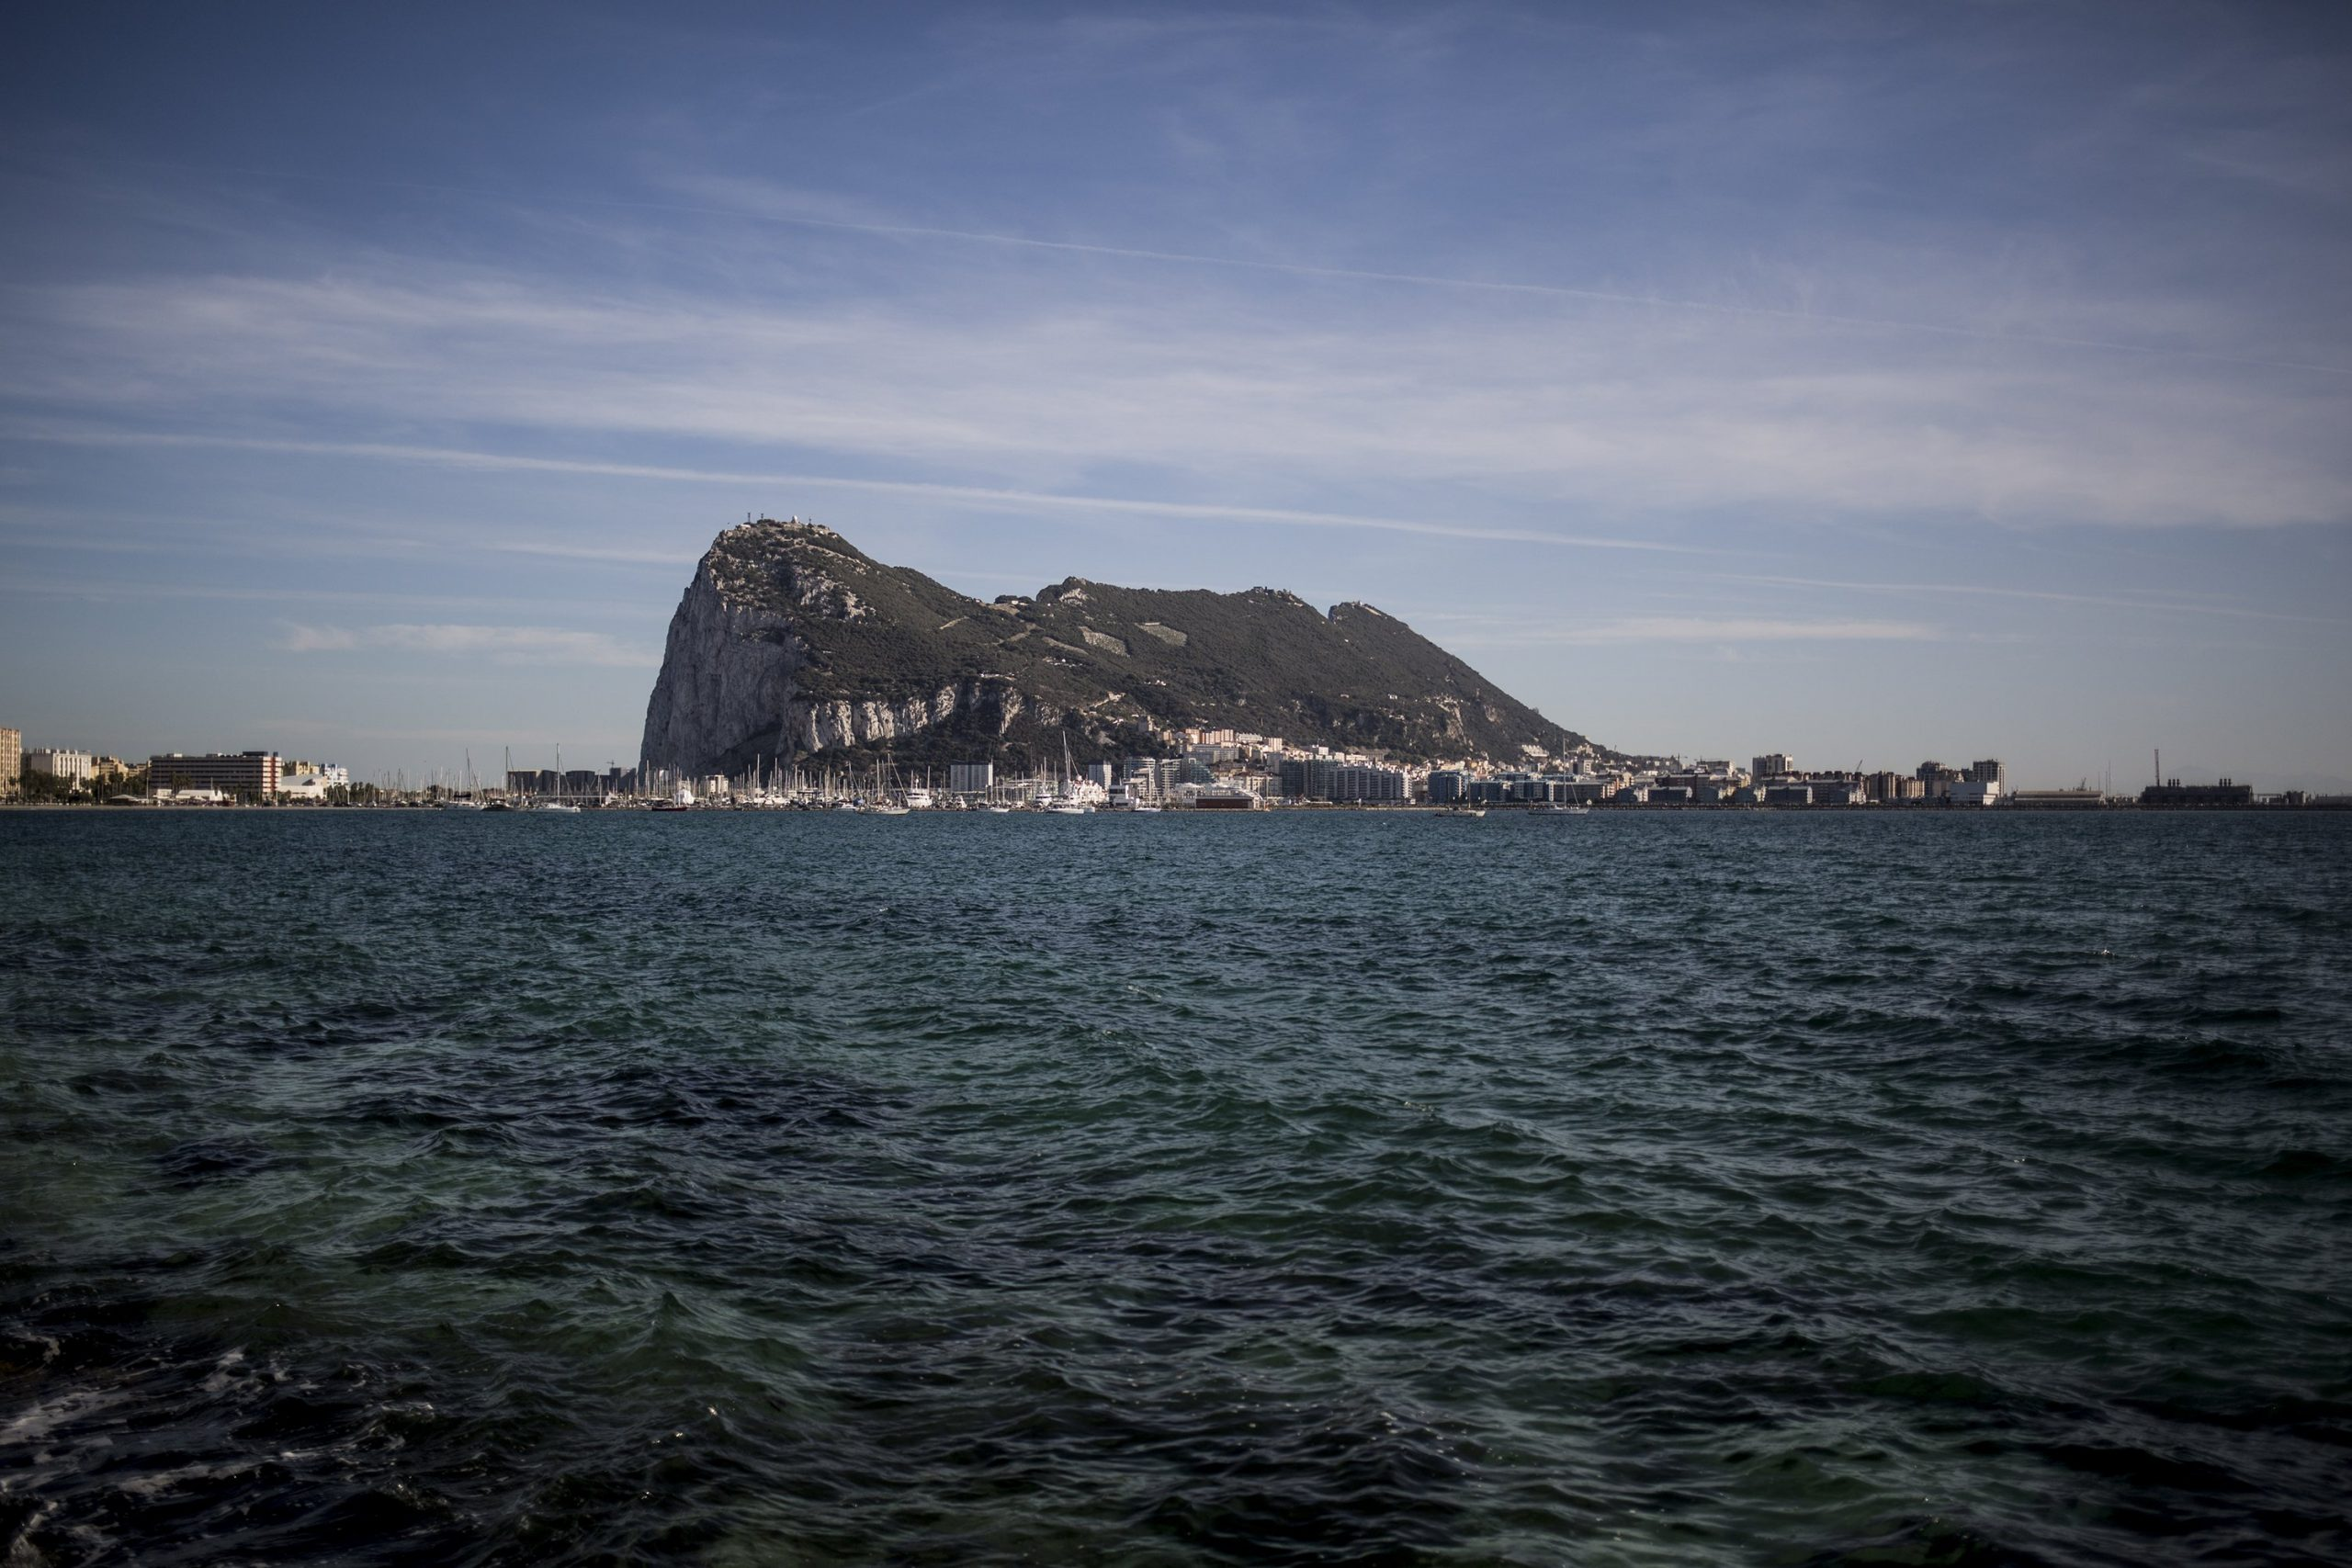 Gibraltar's borders with Spain are still in doubt after Brexit